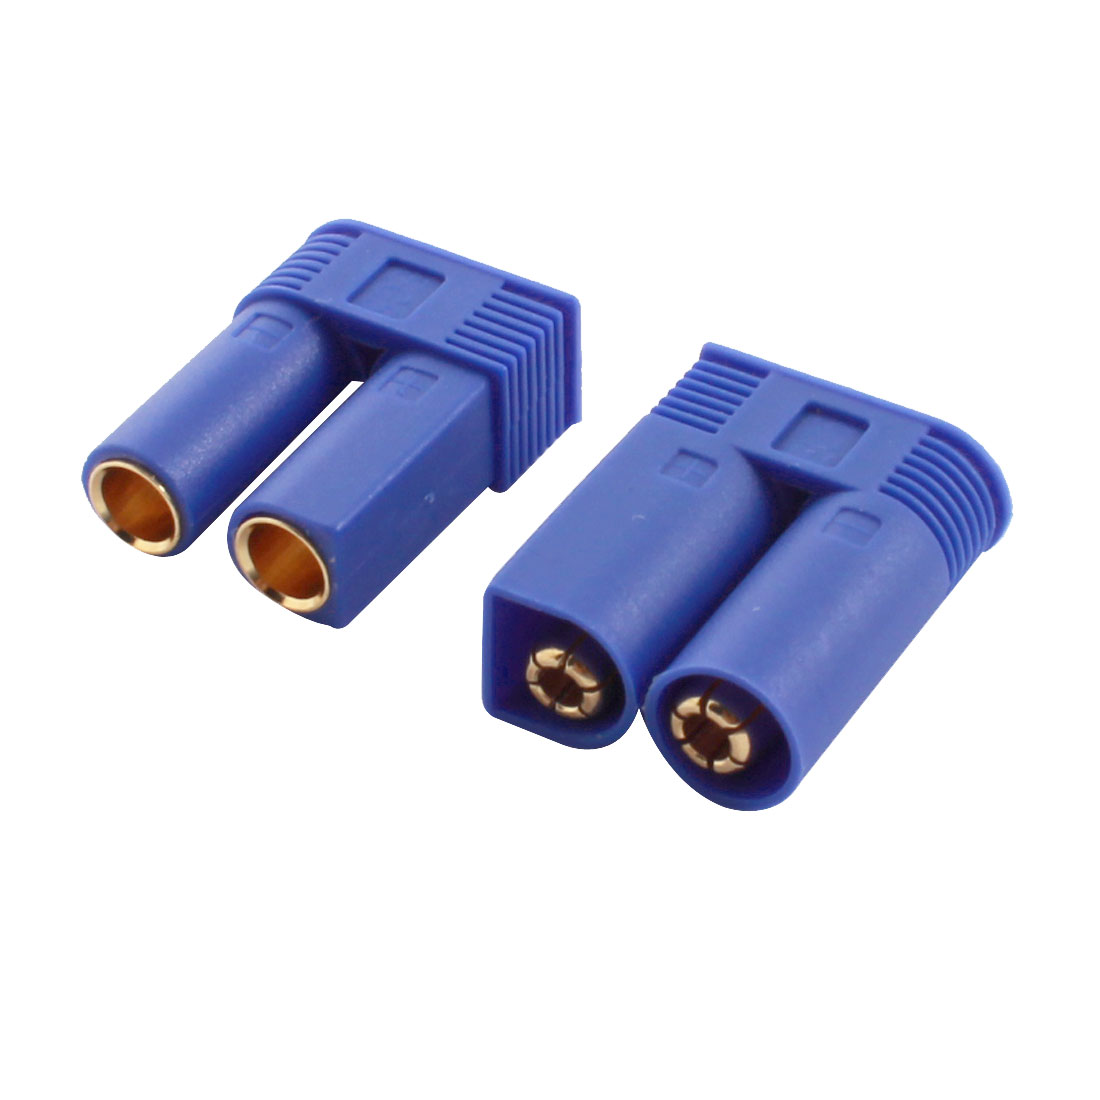 RC LiPo Battery Charge Adapter 100A EC5 5mm Male Female Connector Pair